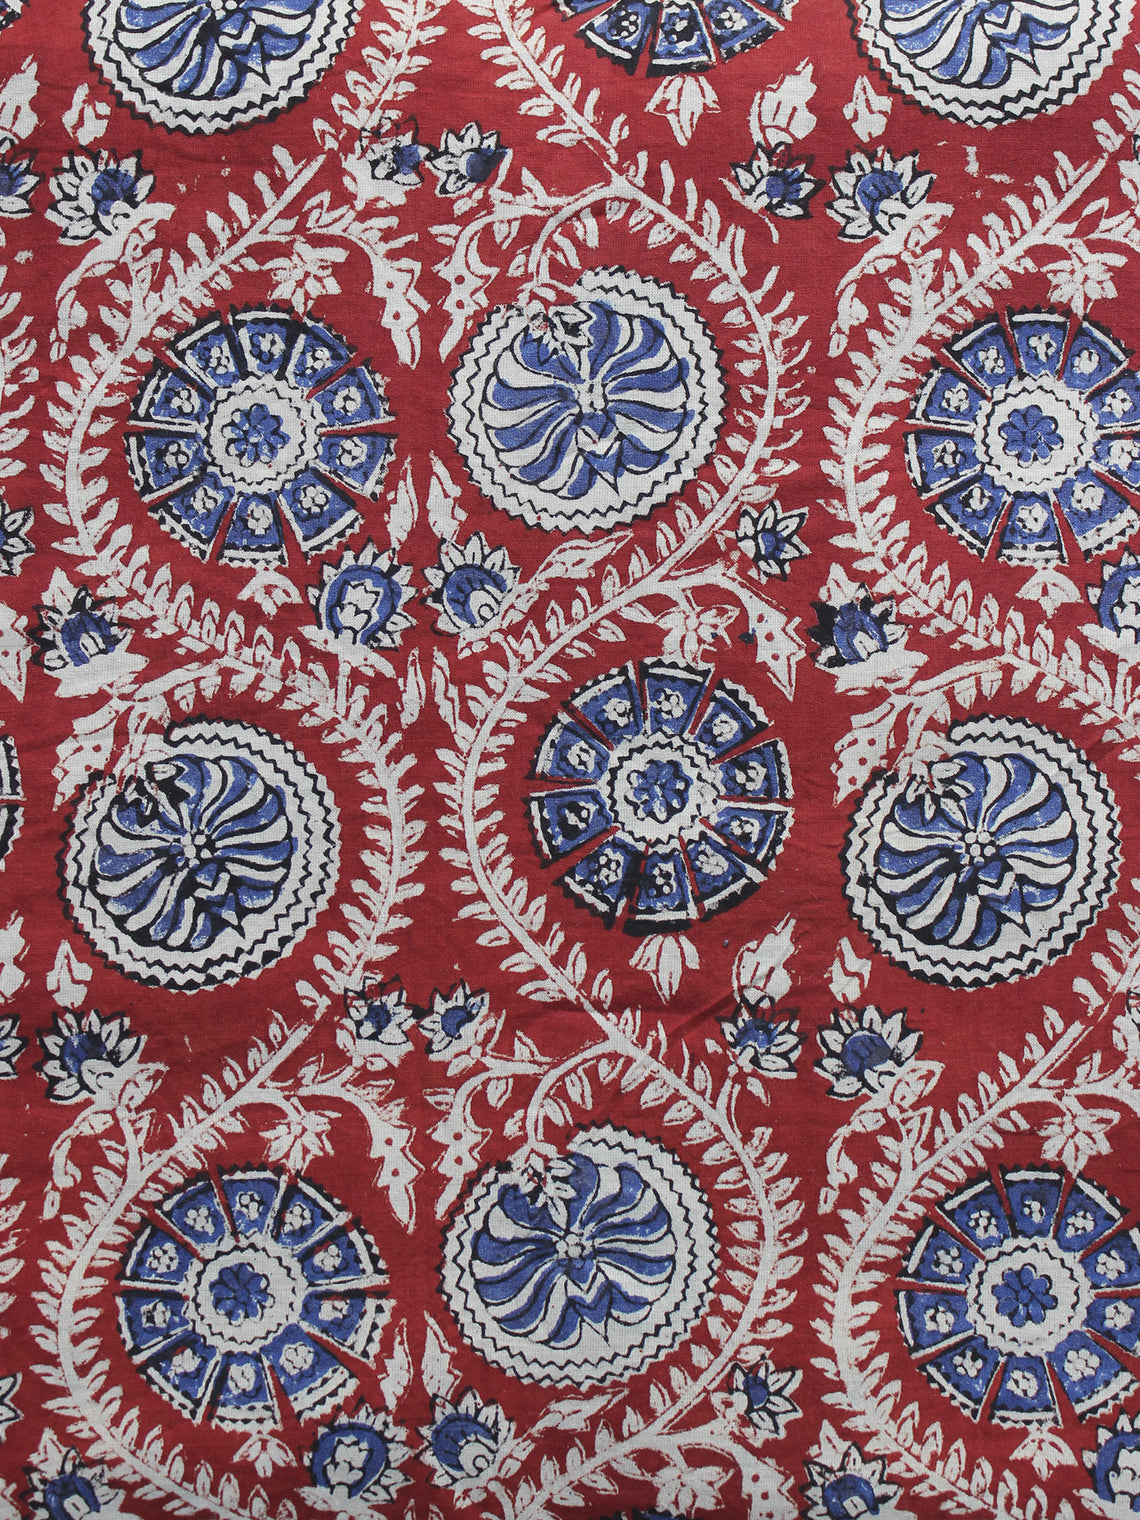 Red Ivory Indigo Hand Block Printed Cotton Fabric Per Meter - F001F1151